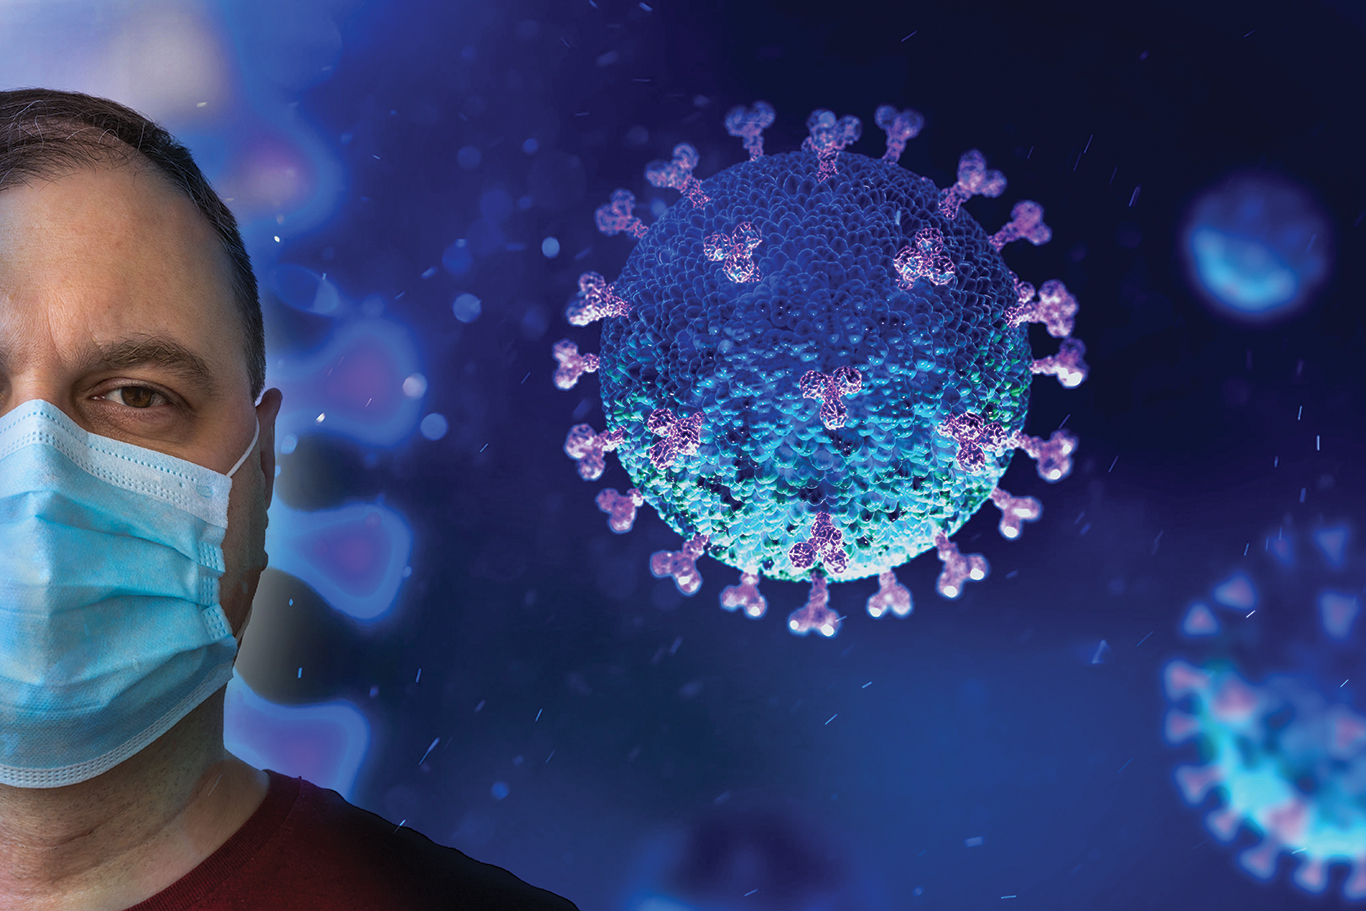 Health Watch: Staying mentally strong during the pandemic